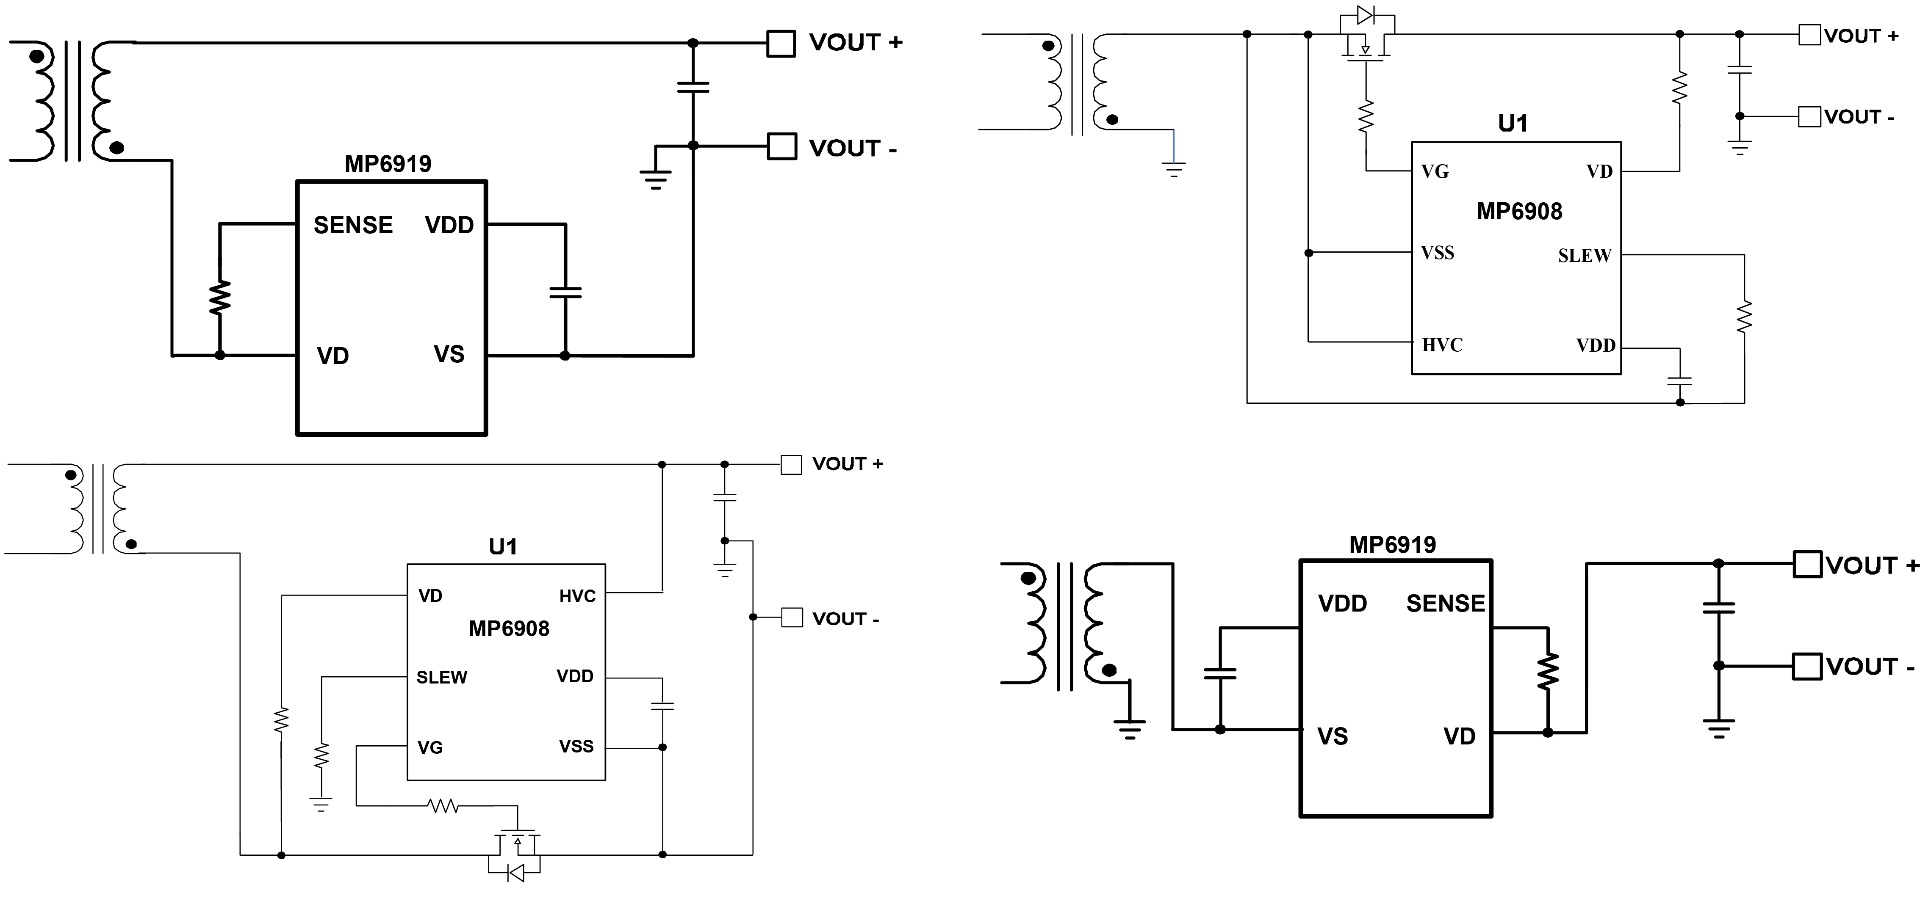 Figure 5: MP6908 Controller and Ideal Diode Application Circuit on Low Side and High Side